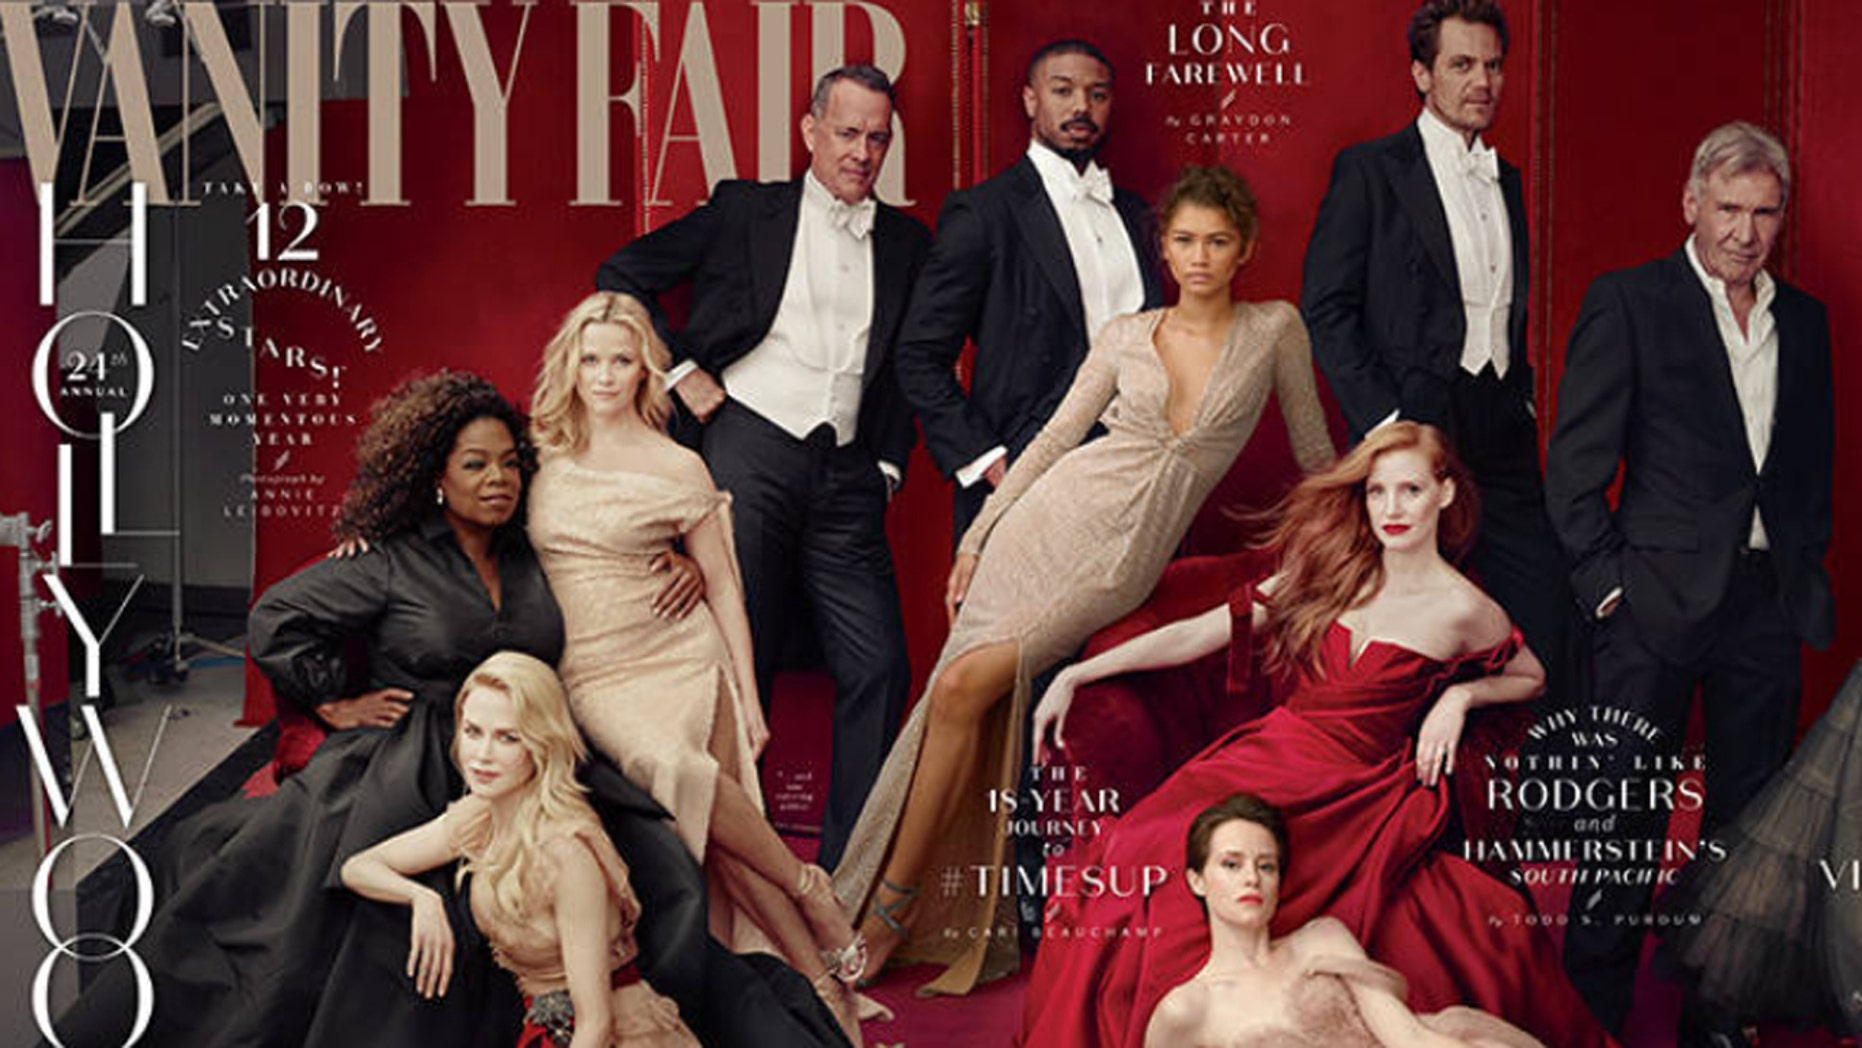 Vanity Fair released its 24th  annual, Annie Leibovitz shot, Vanity Fair Hollywood issue, featuring the top 2018 faces of the industry.